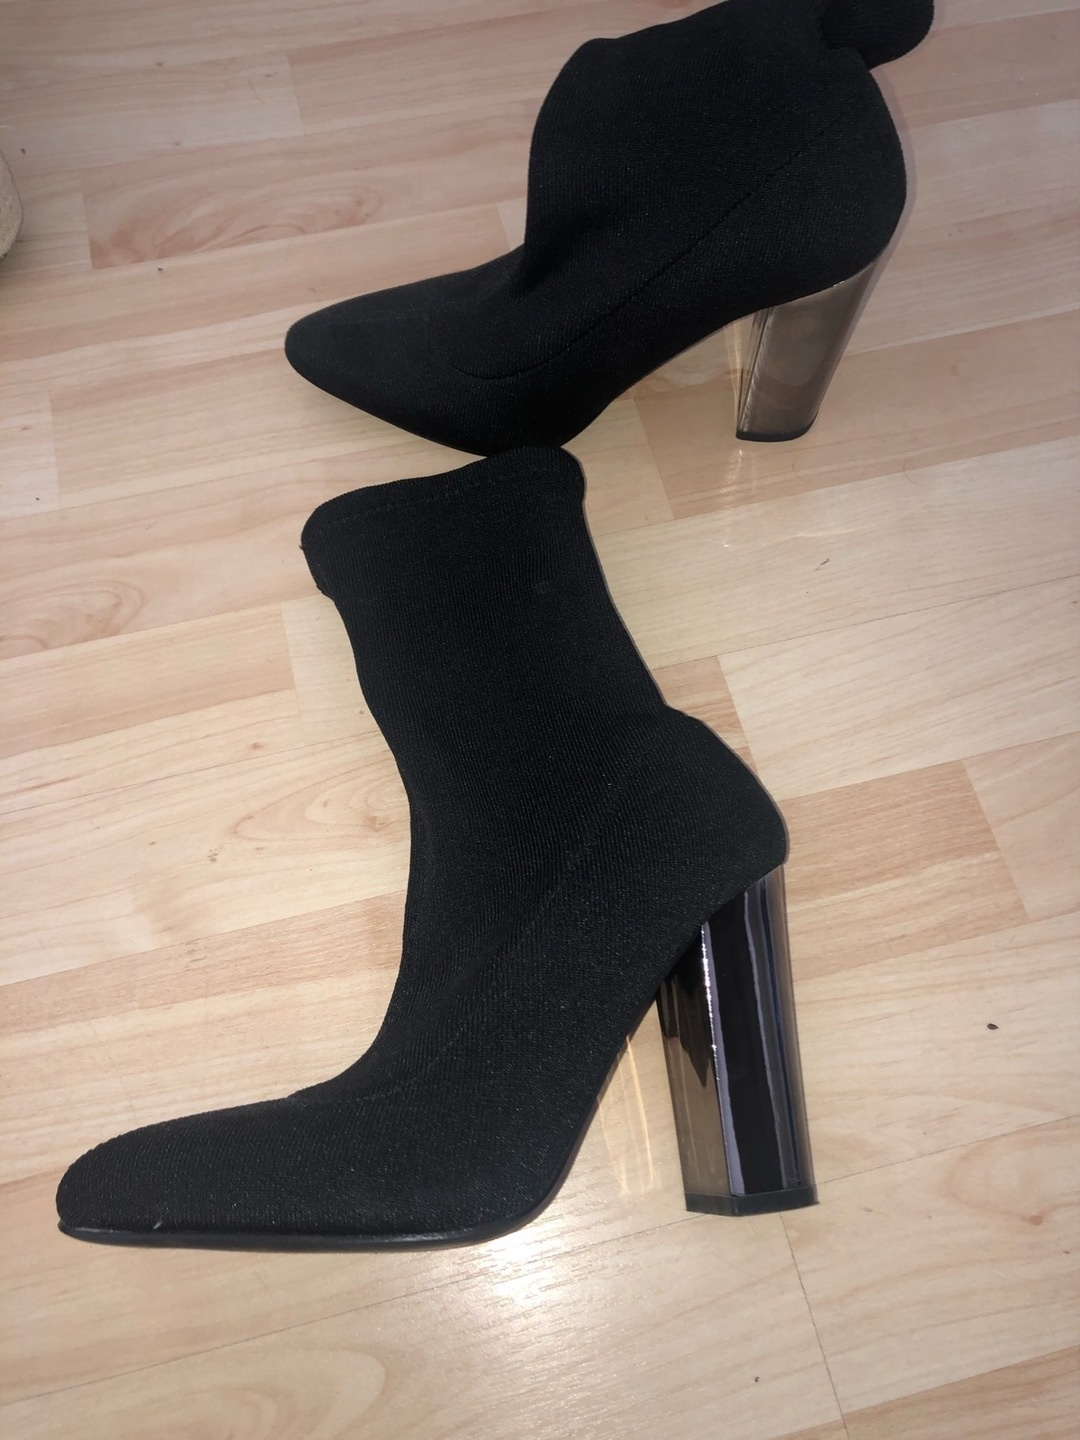 Women's boots - ASOS photo 2